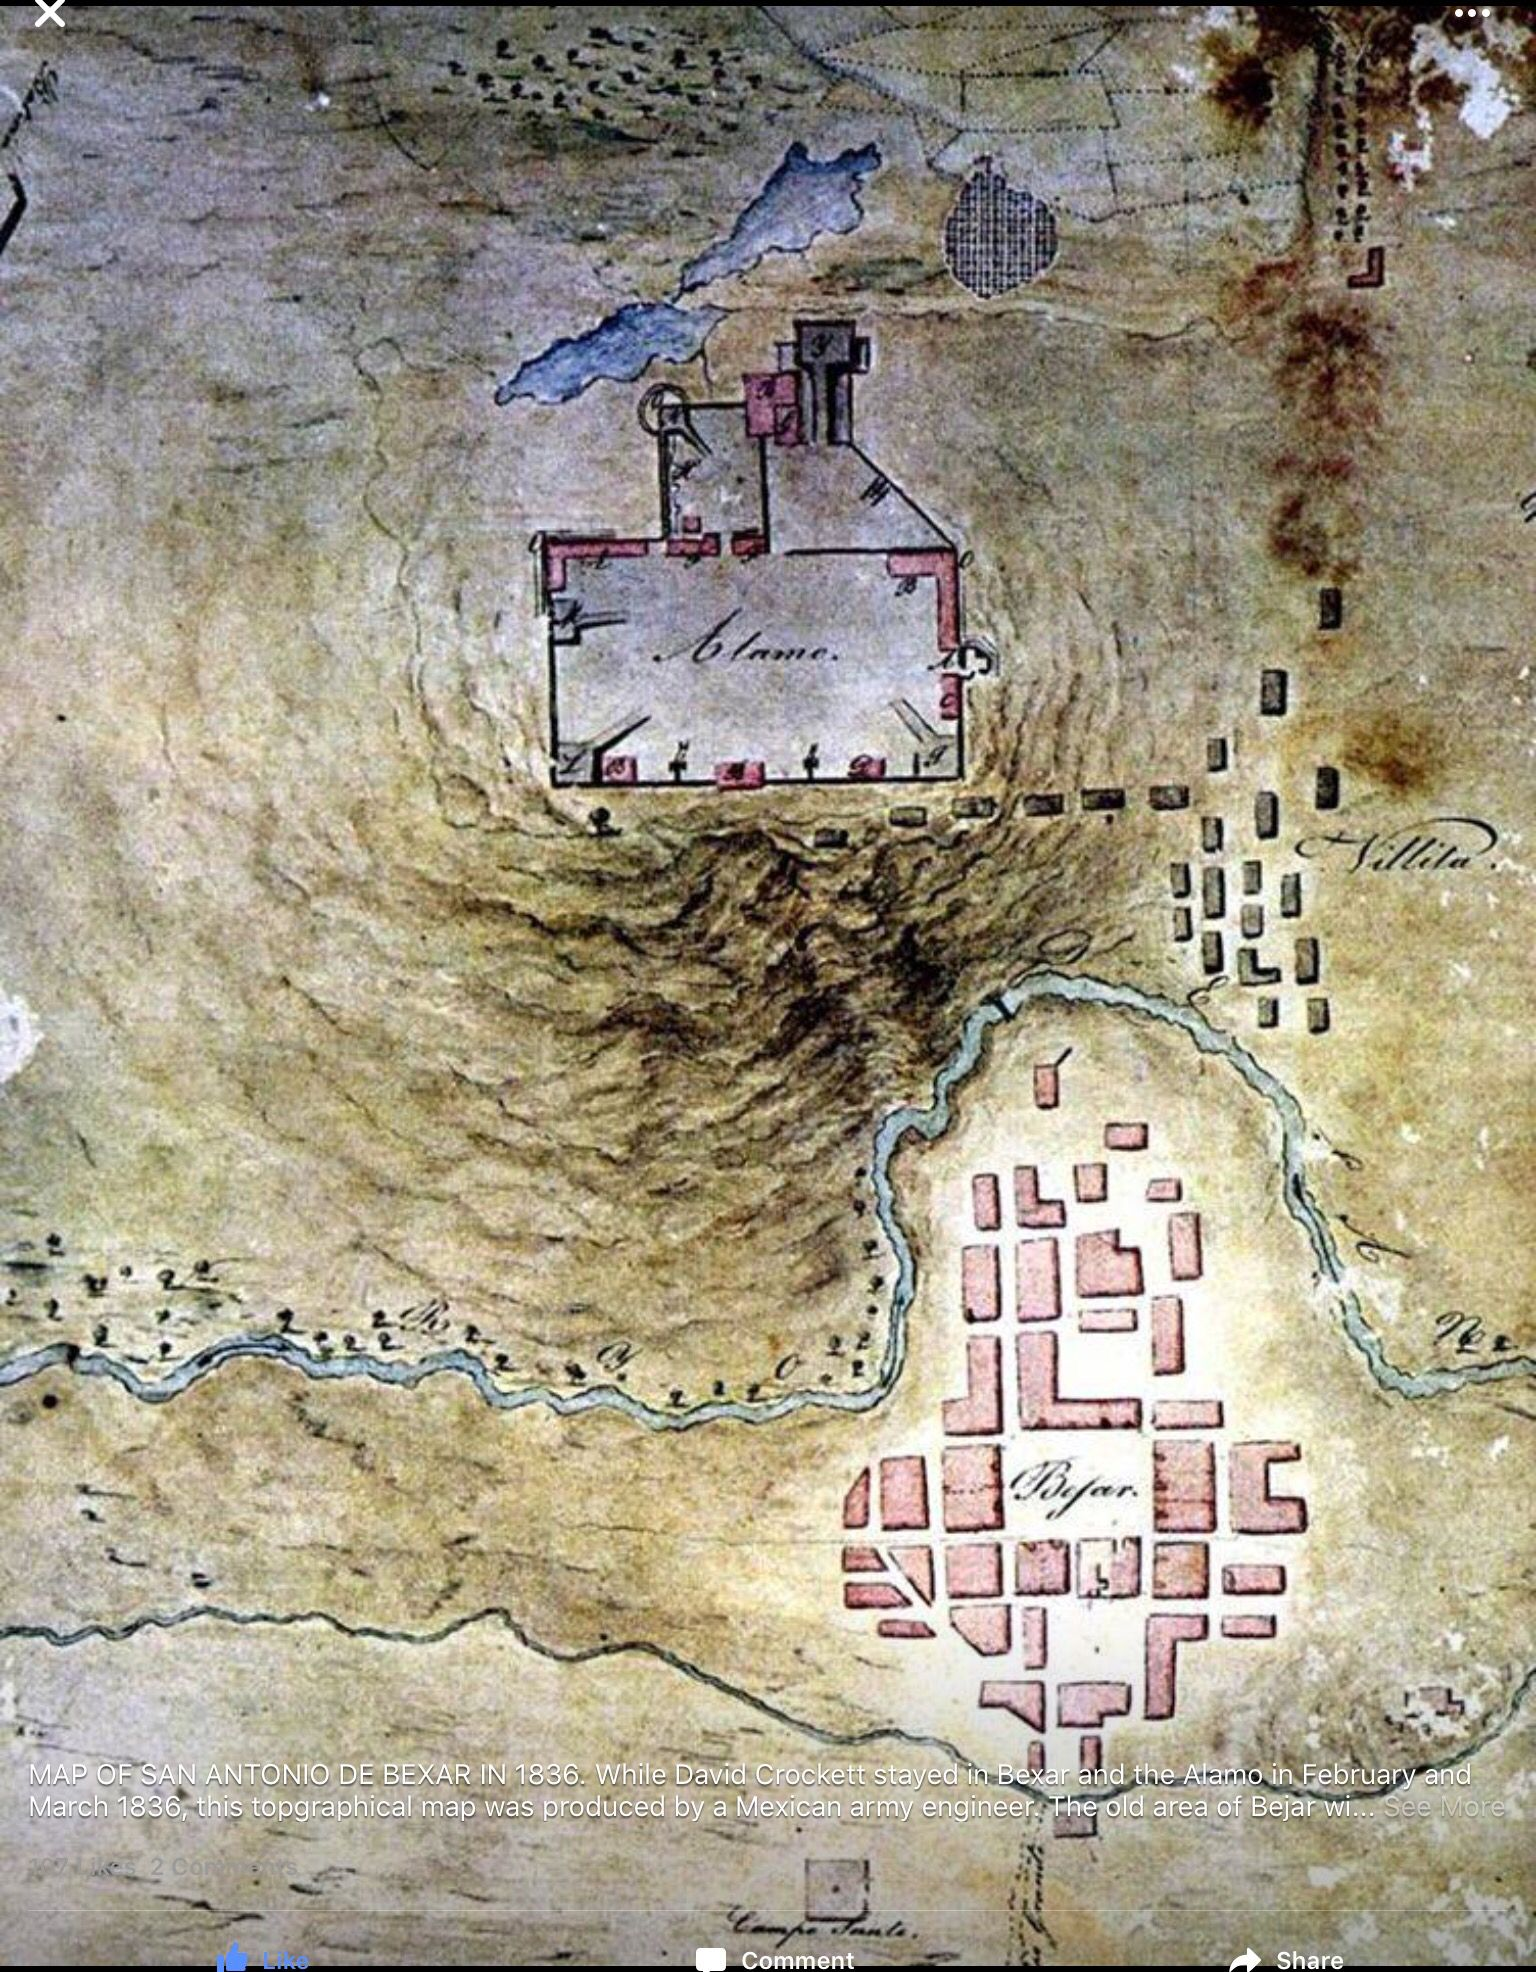 Topo map made by a Mexican Army